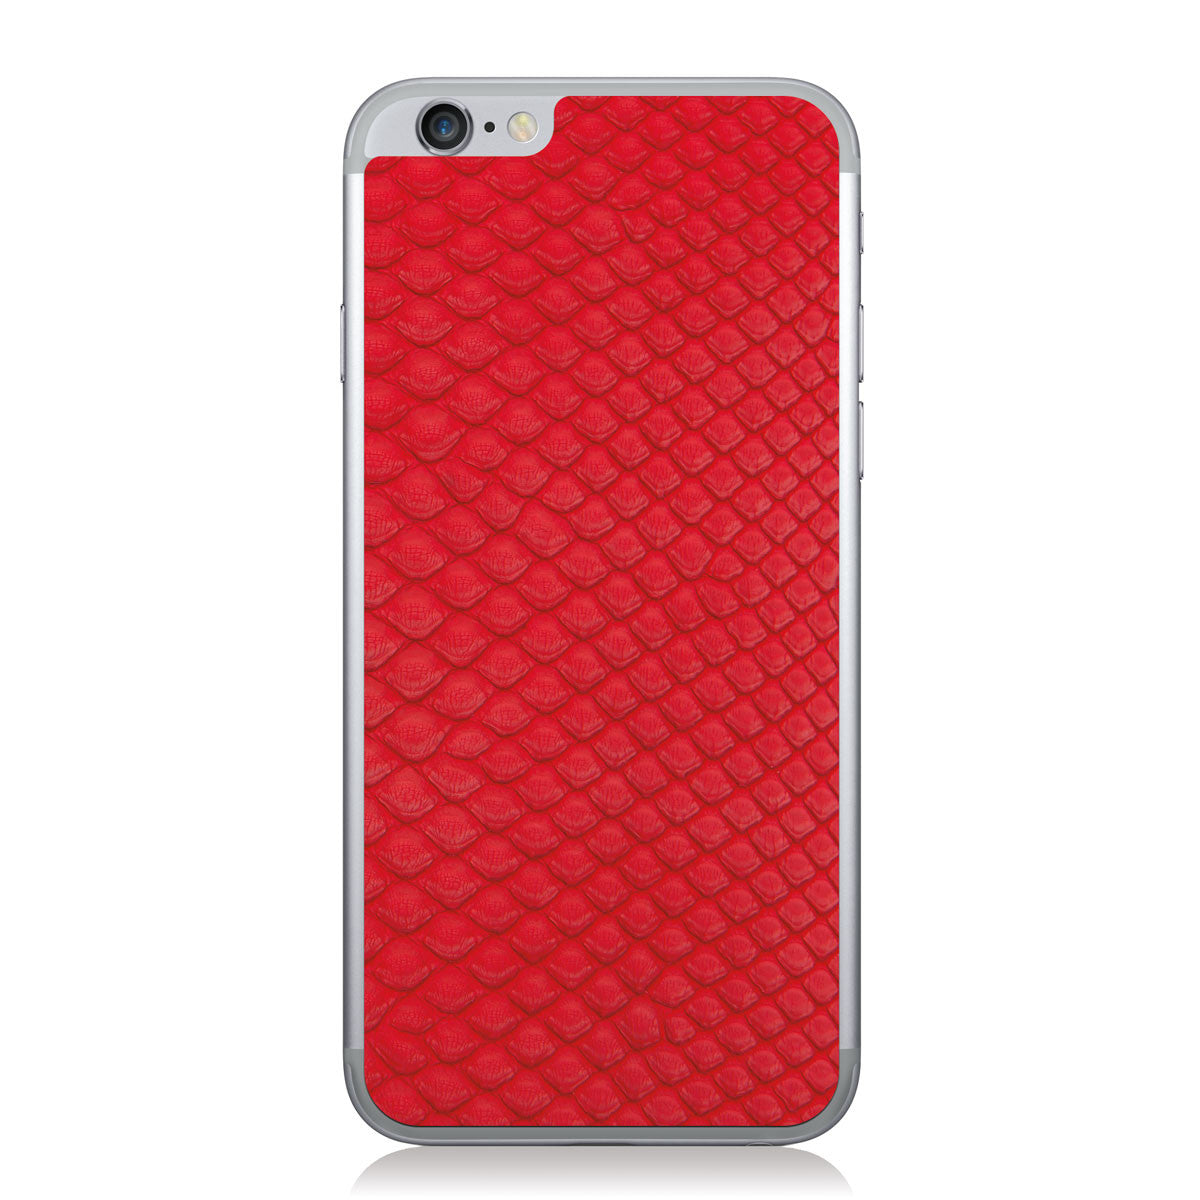 Red Python Back iPhone 6/6s Leather Skin